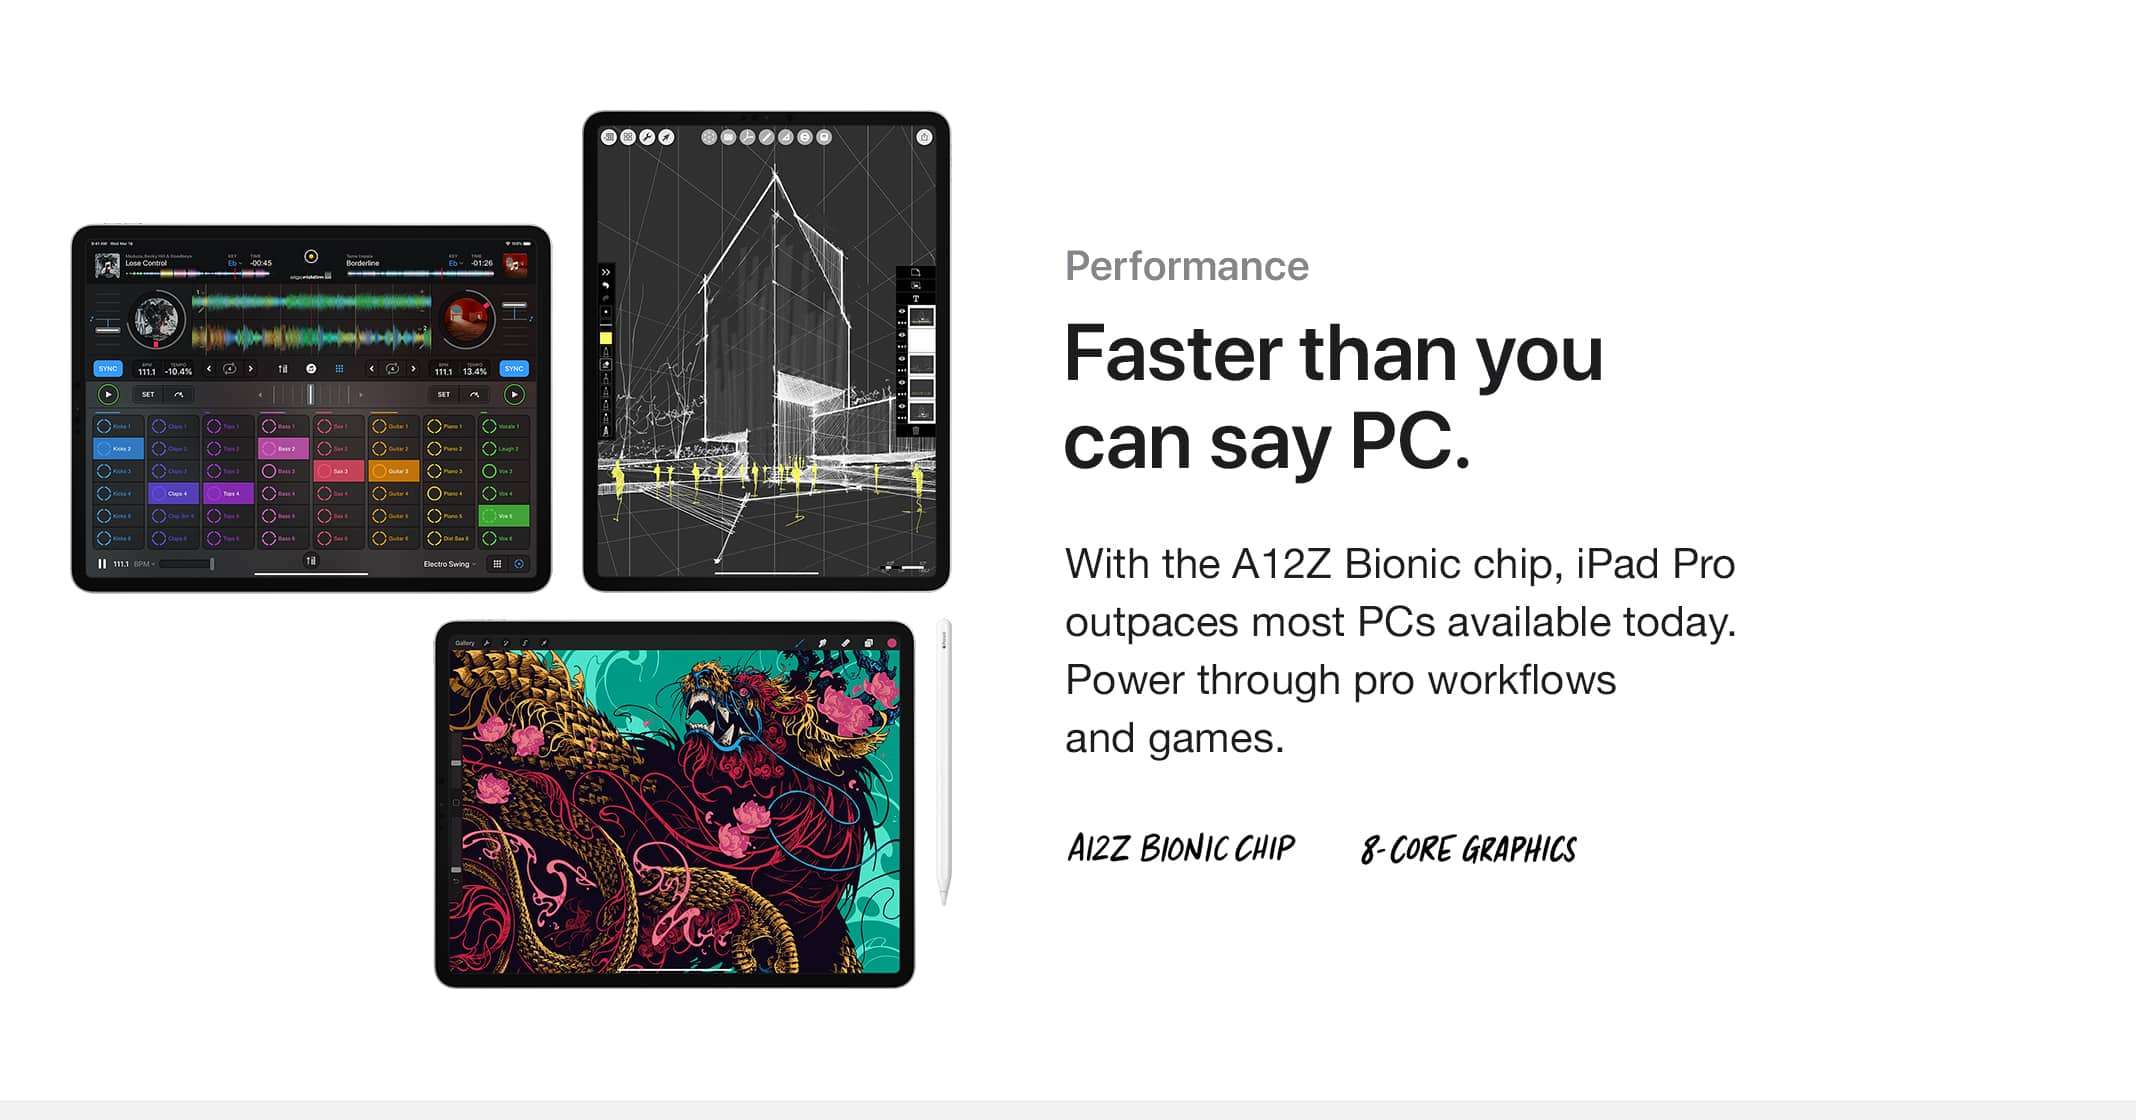 Performance. Faster than you can say PC. With the A12Z Bionic chip, iPad Pro outpaces most PCs available today. Power through pro workflows and games. A12Z BIONIC CHIP, 8-CORE GRAPHICS.